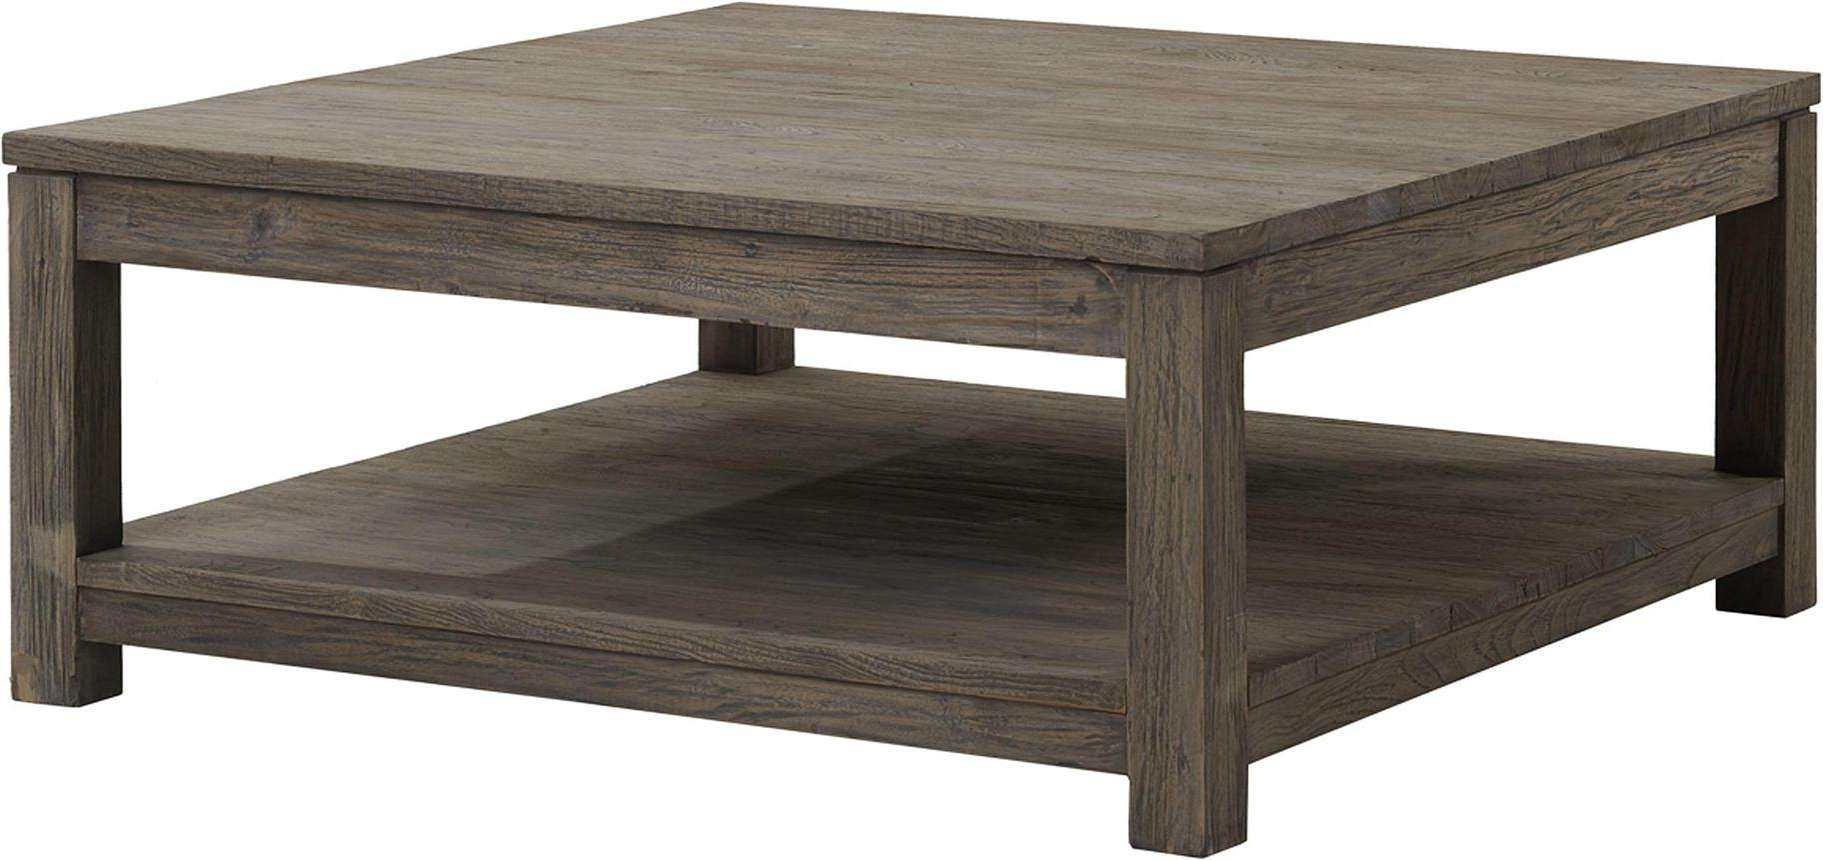 Preferred Square Wooden Coffee Table Intended For Large Square Coffee Table Increasing Interior Elegance – Ruchi Designs (View 19 of 20)